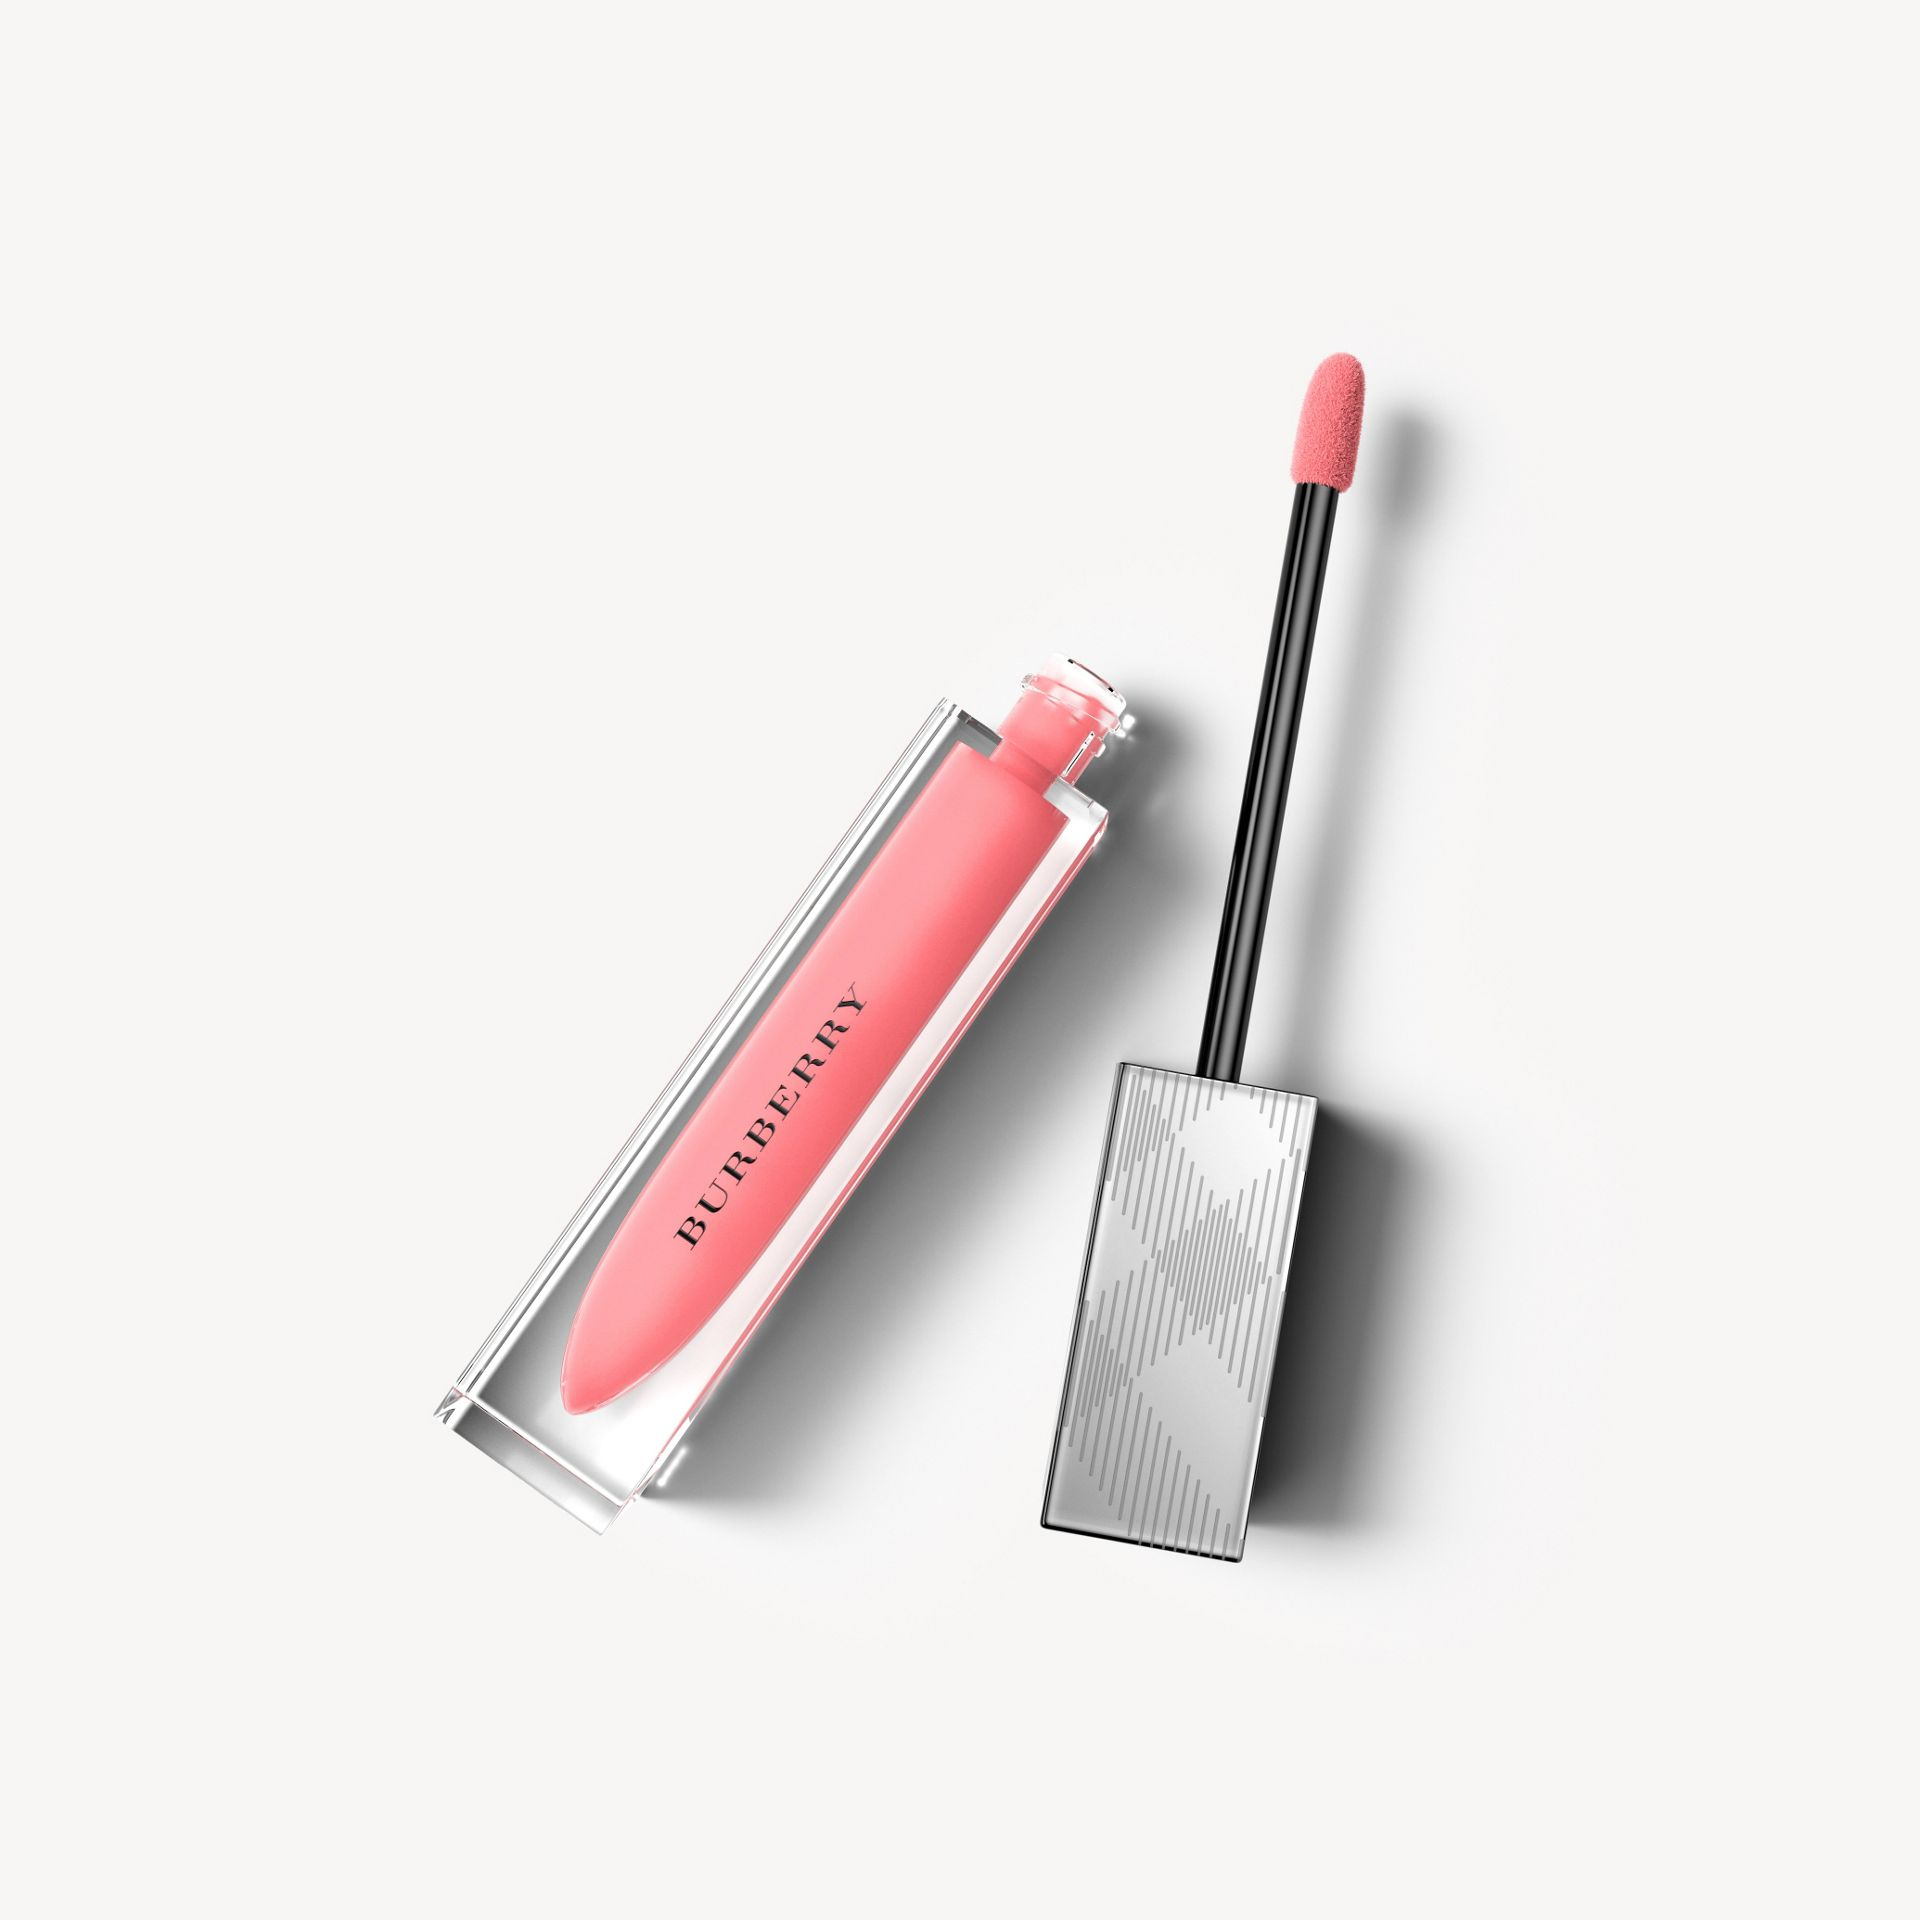 Burberry Kisses Gloss - Apricot Pink No.69 - gallery image 1